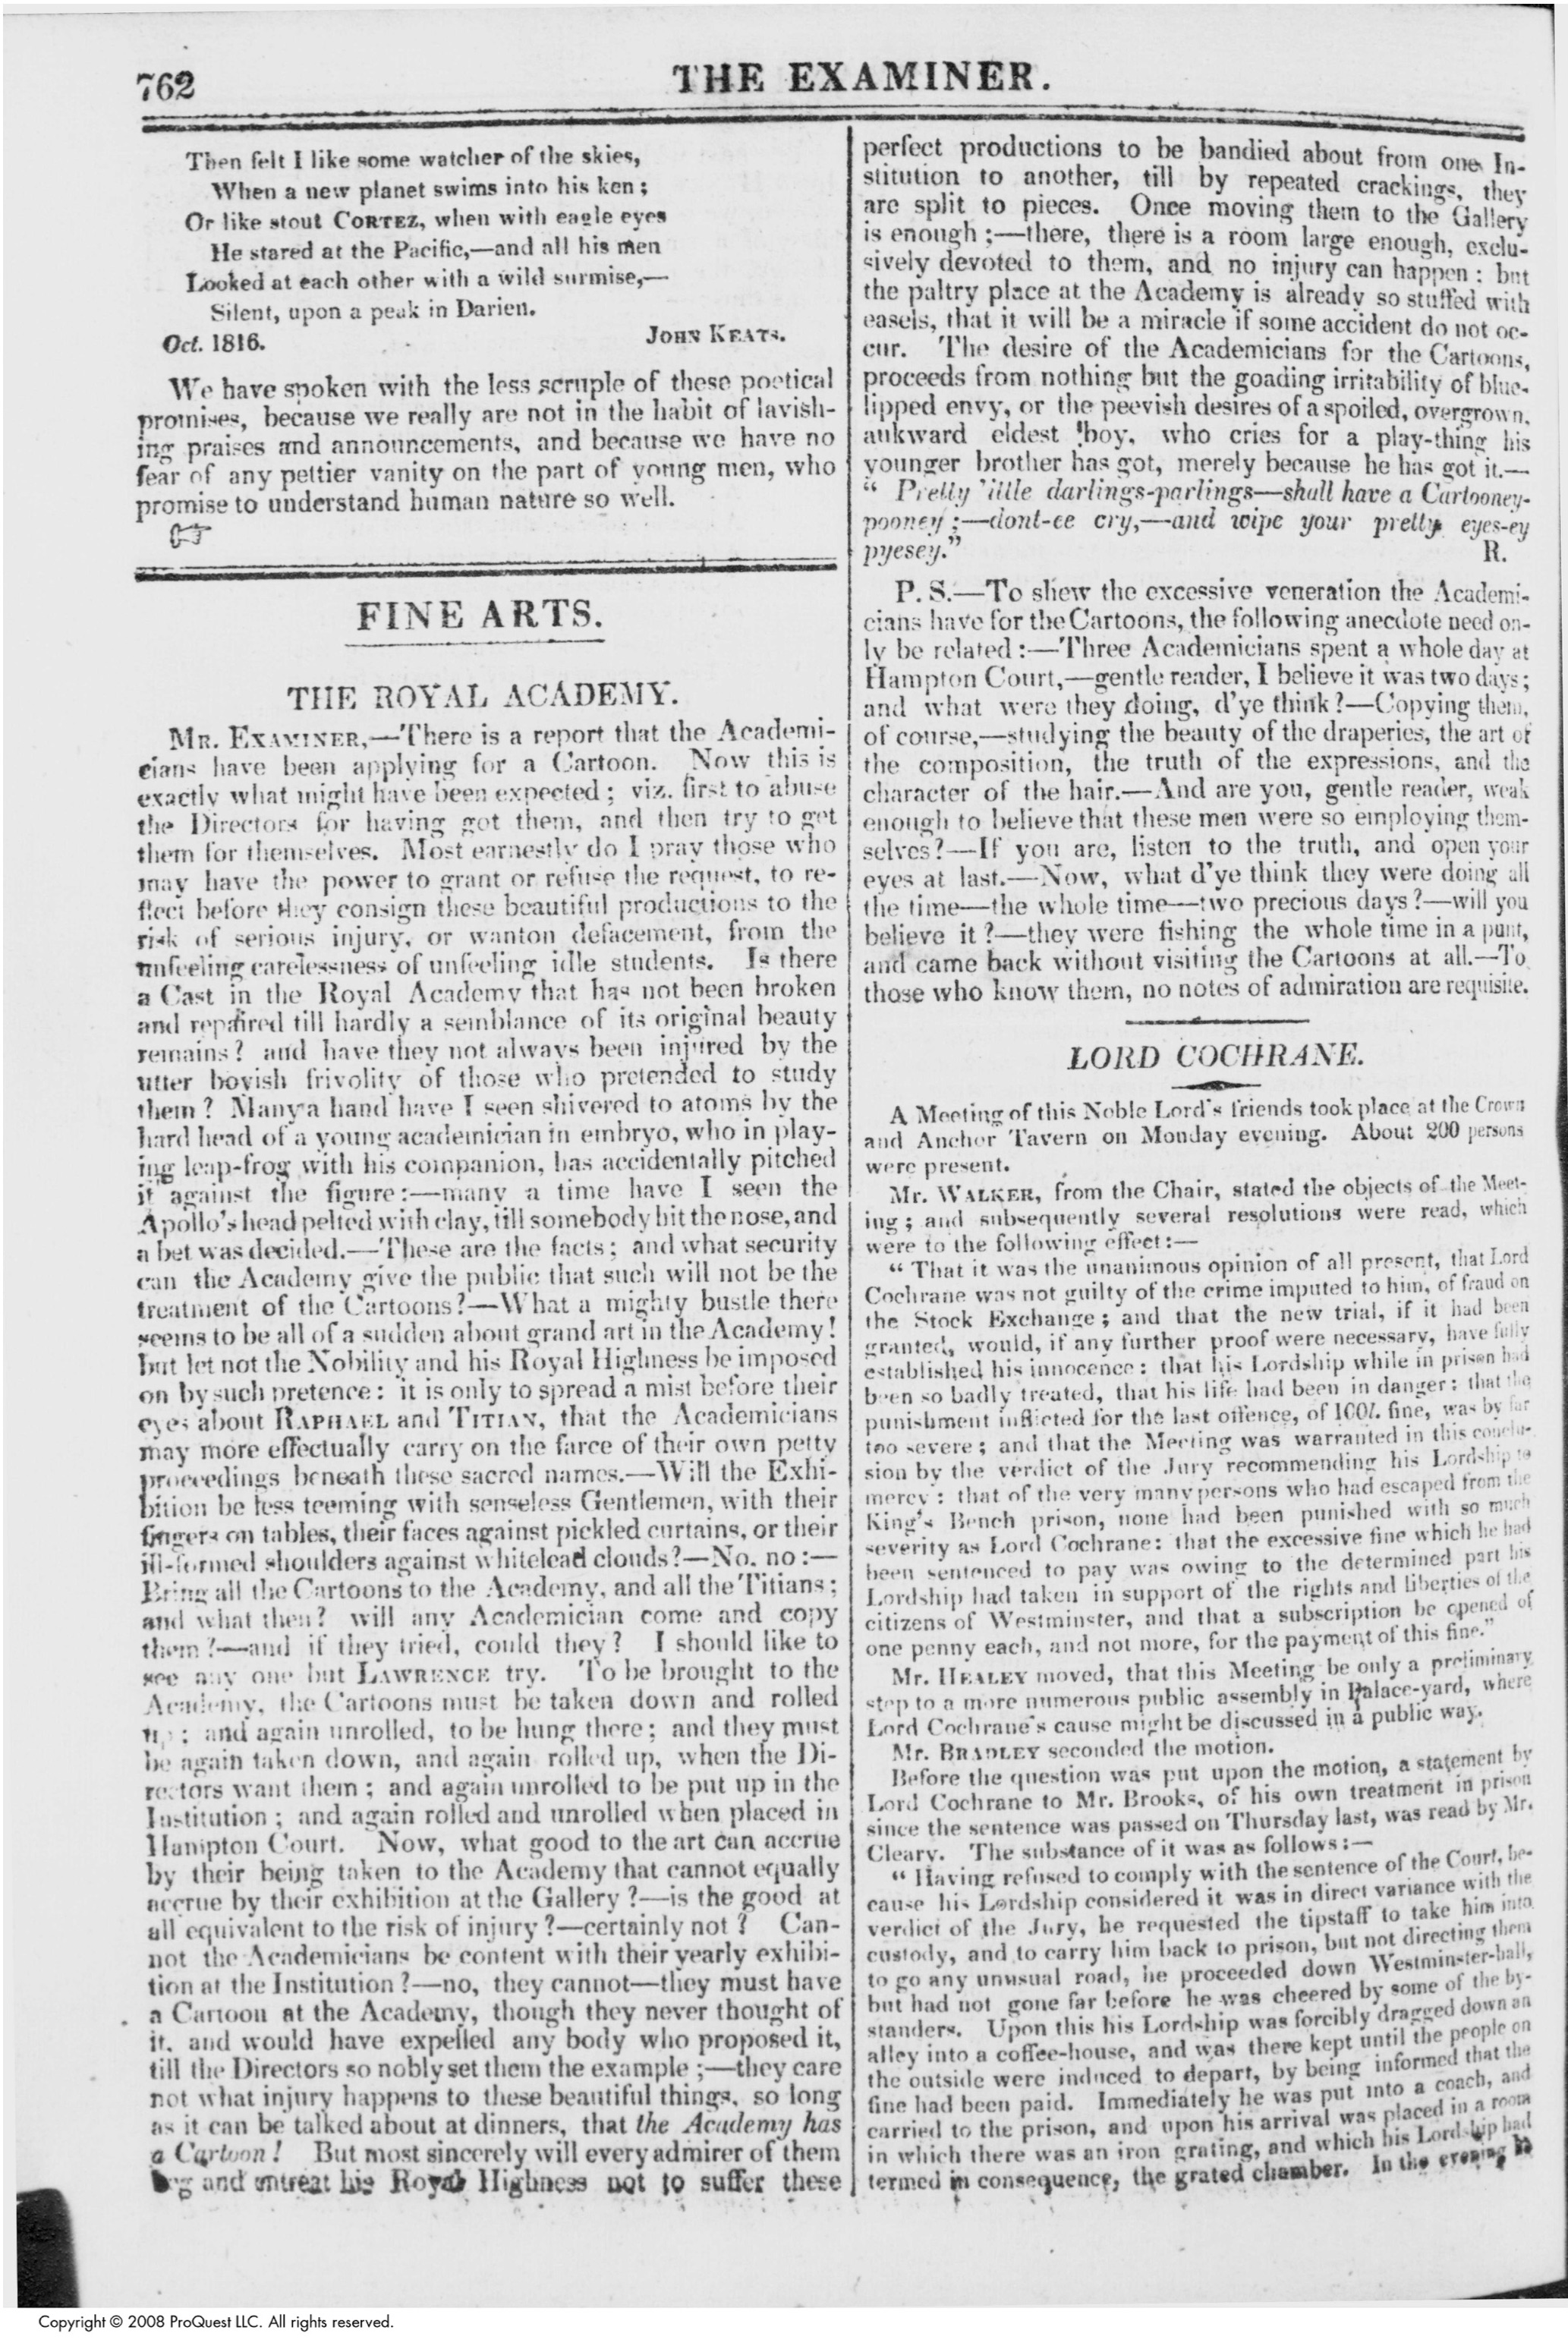 "leigh hunt s young poets essay dec the keats letters  page 2 of ""young poets "" by leigh hunt from the examiner 1 dec 1816 courtesy british periodicals database click image for full size"